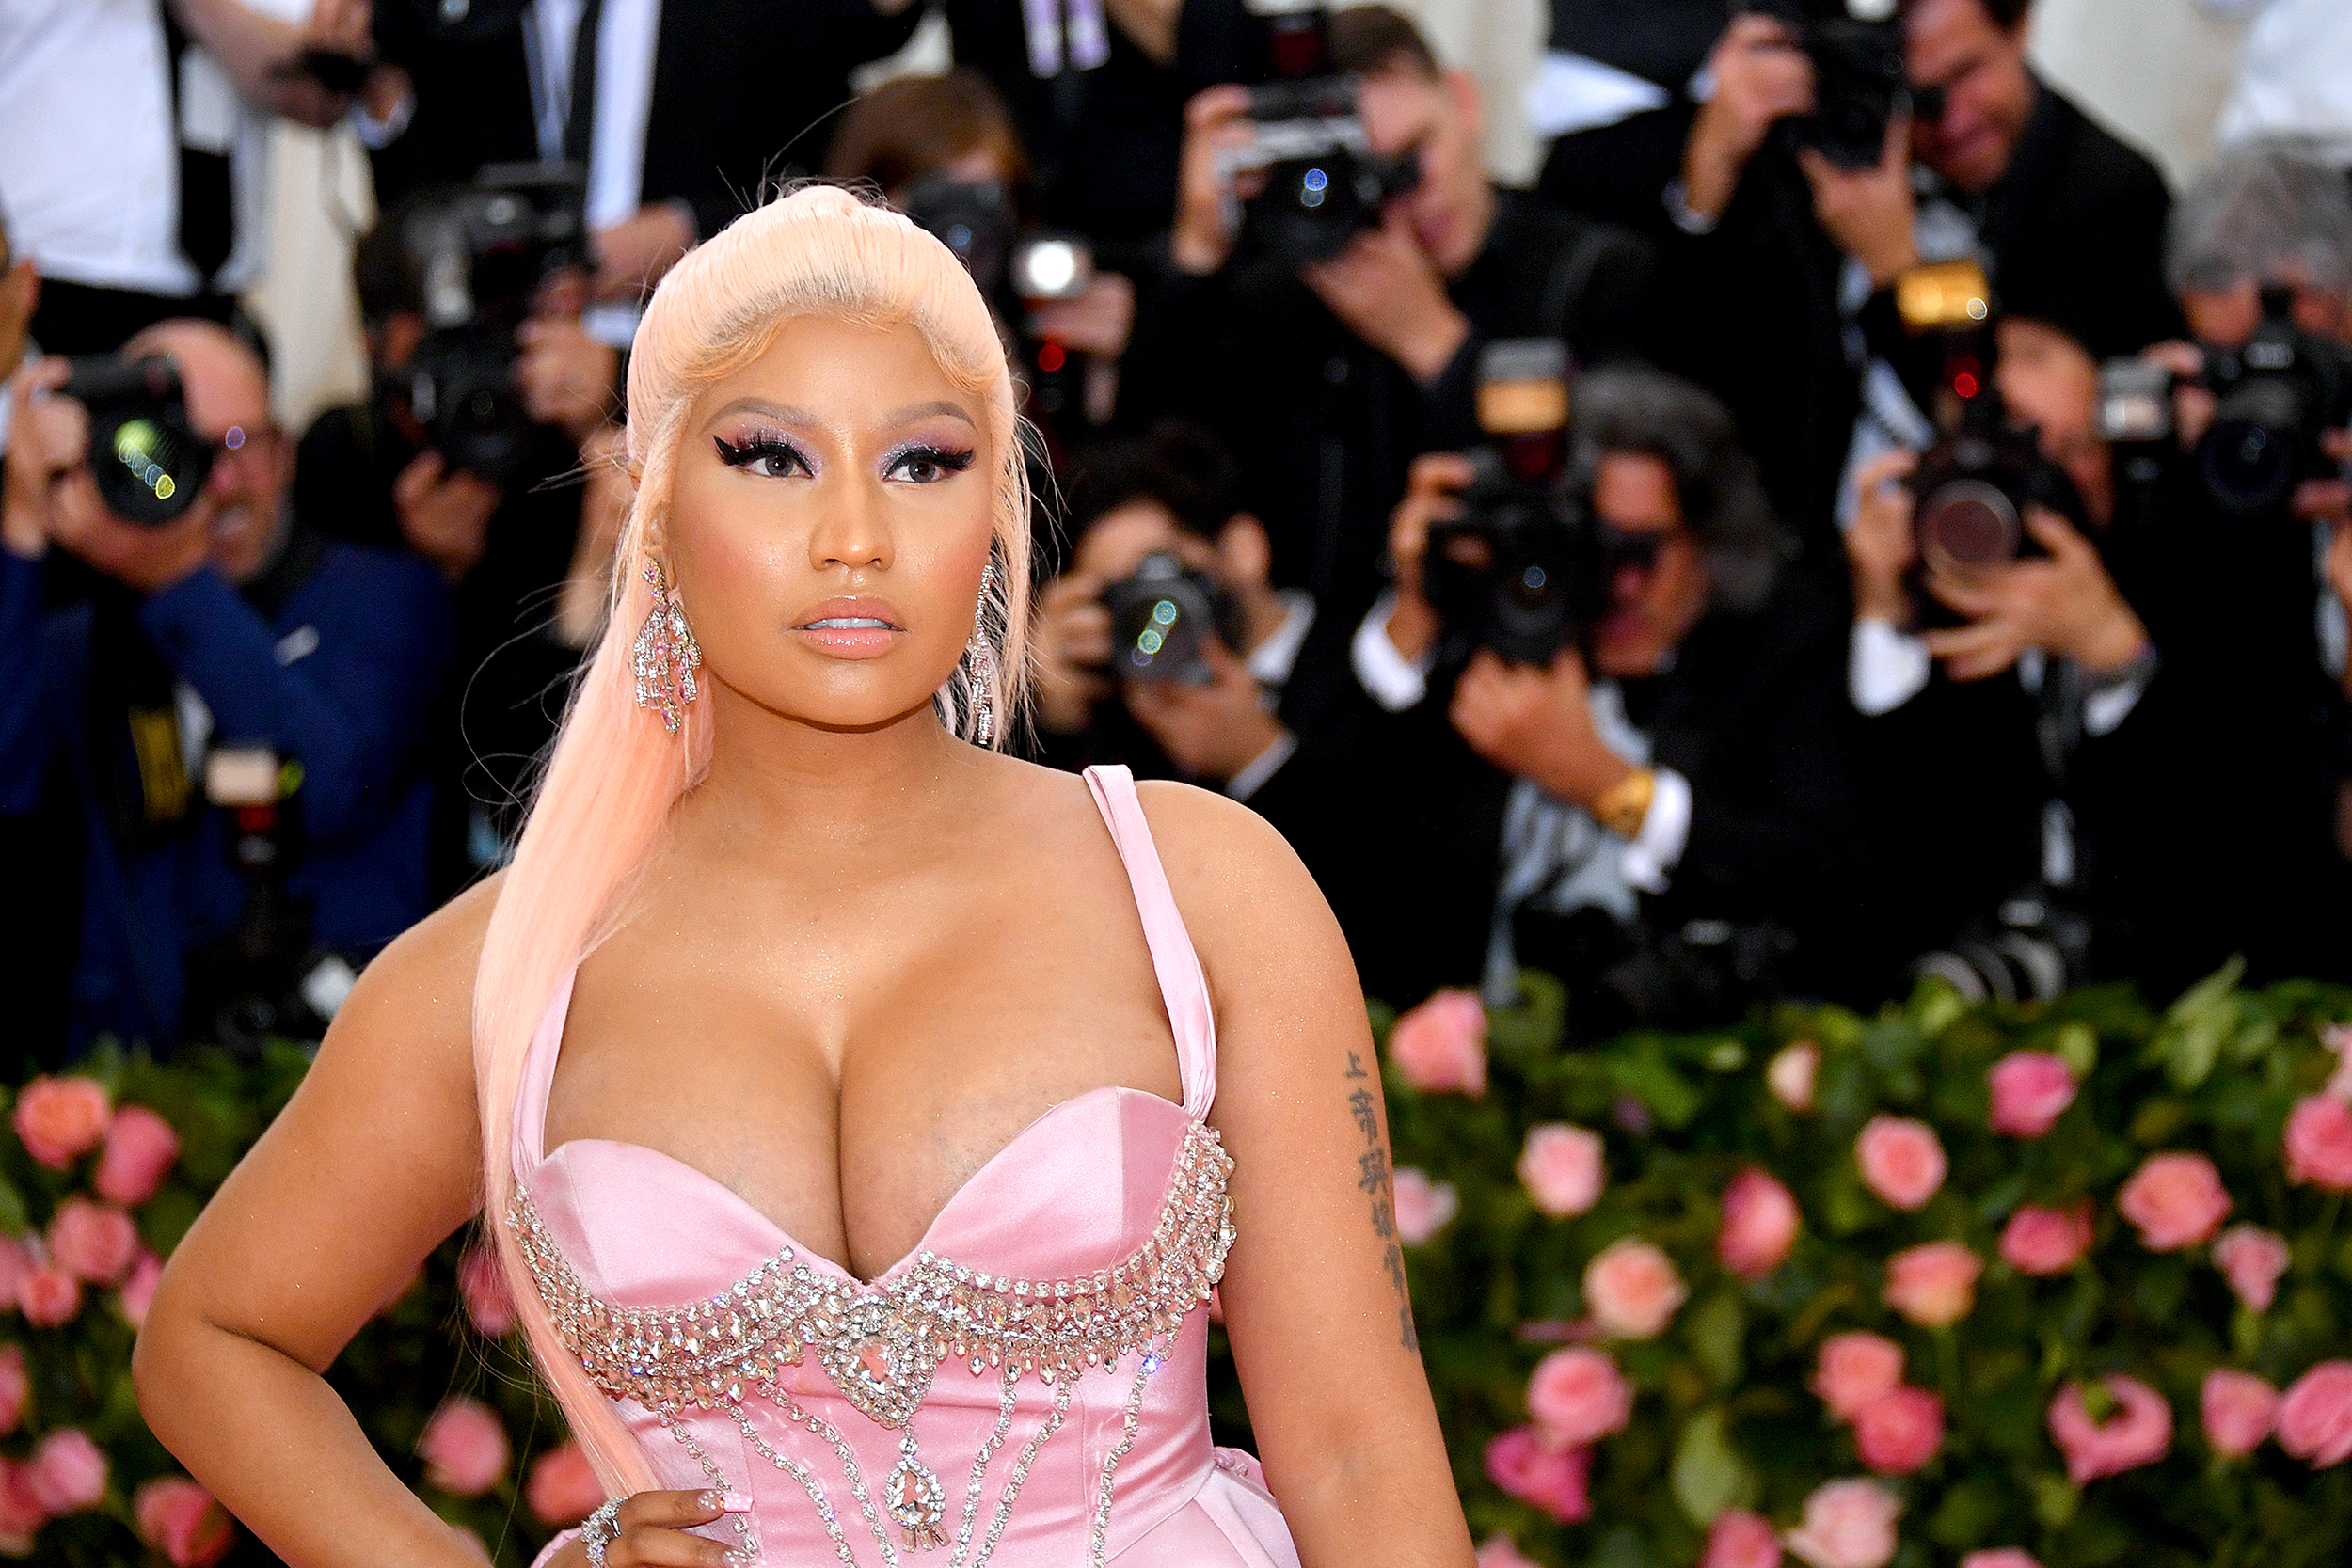 Nicki Minaj says she didn't attend Met Gala because of Covid vaccination requirement